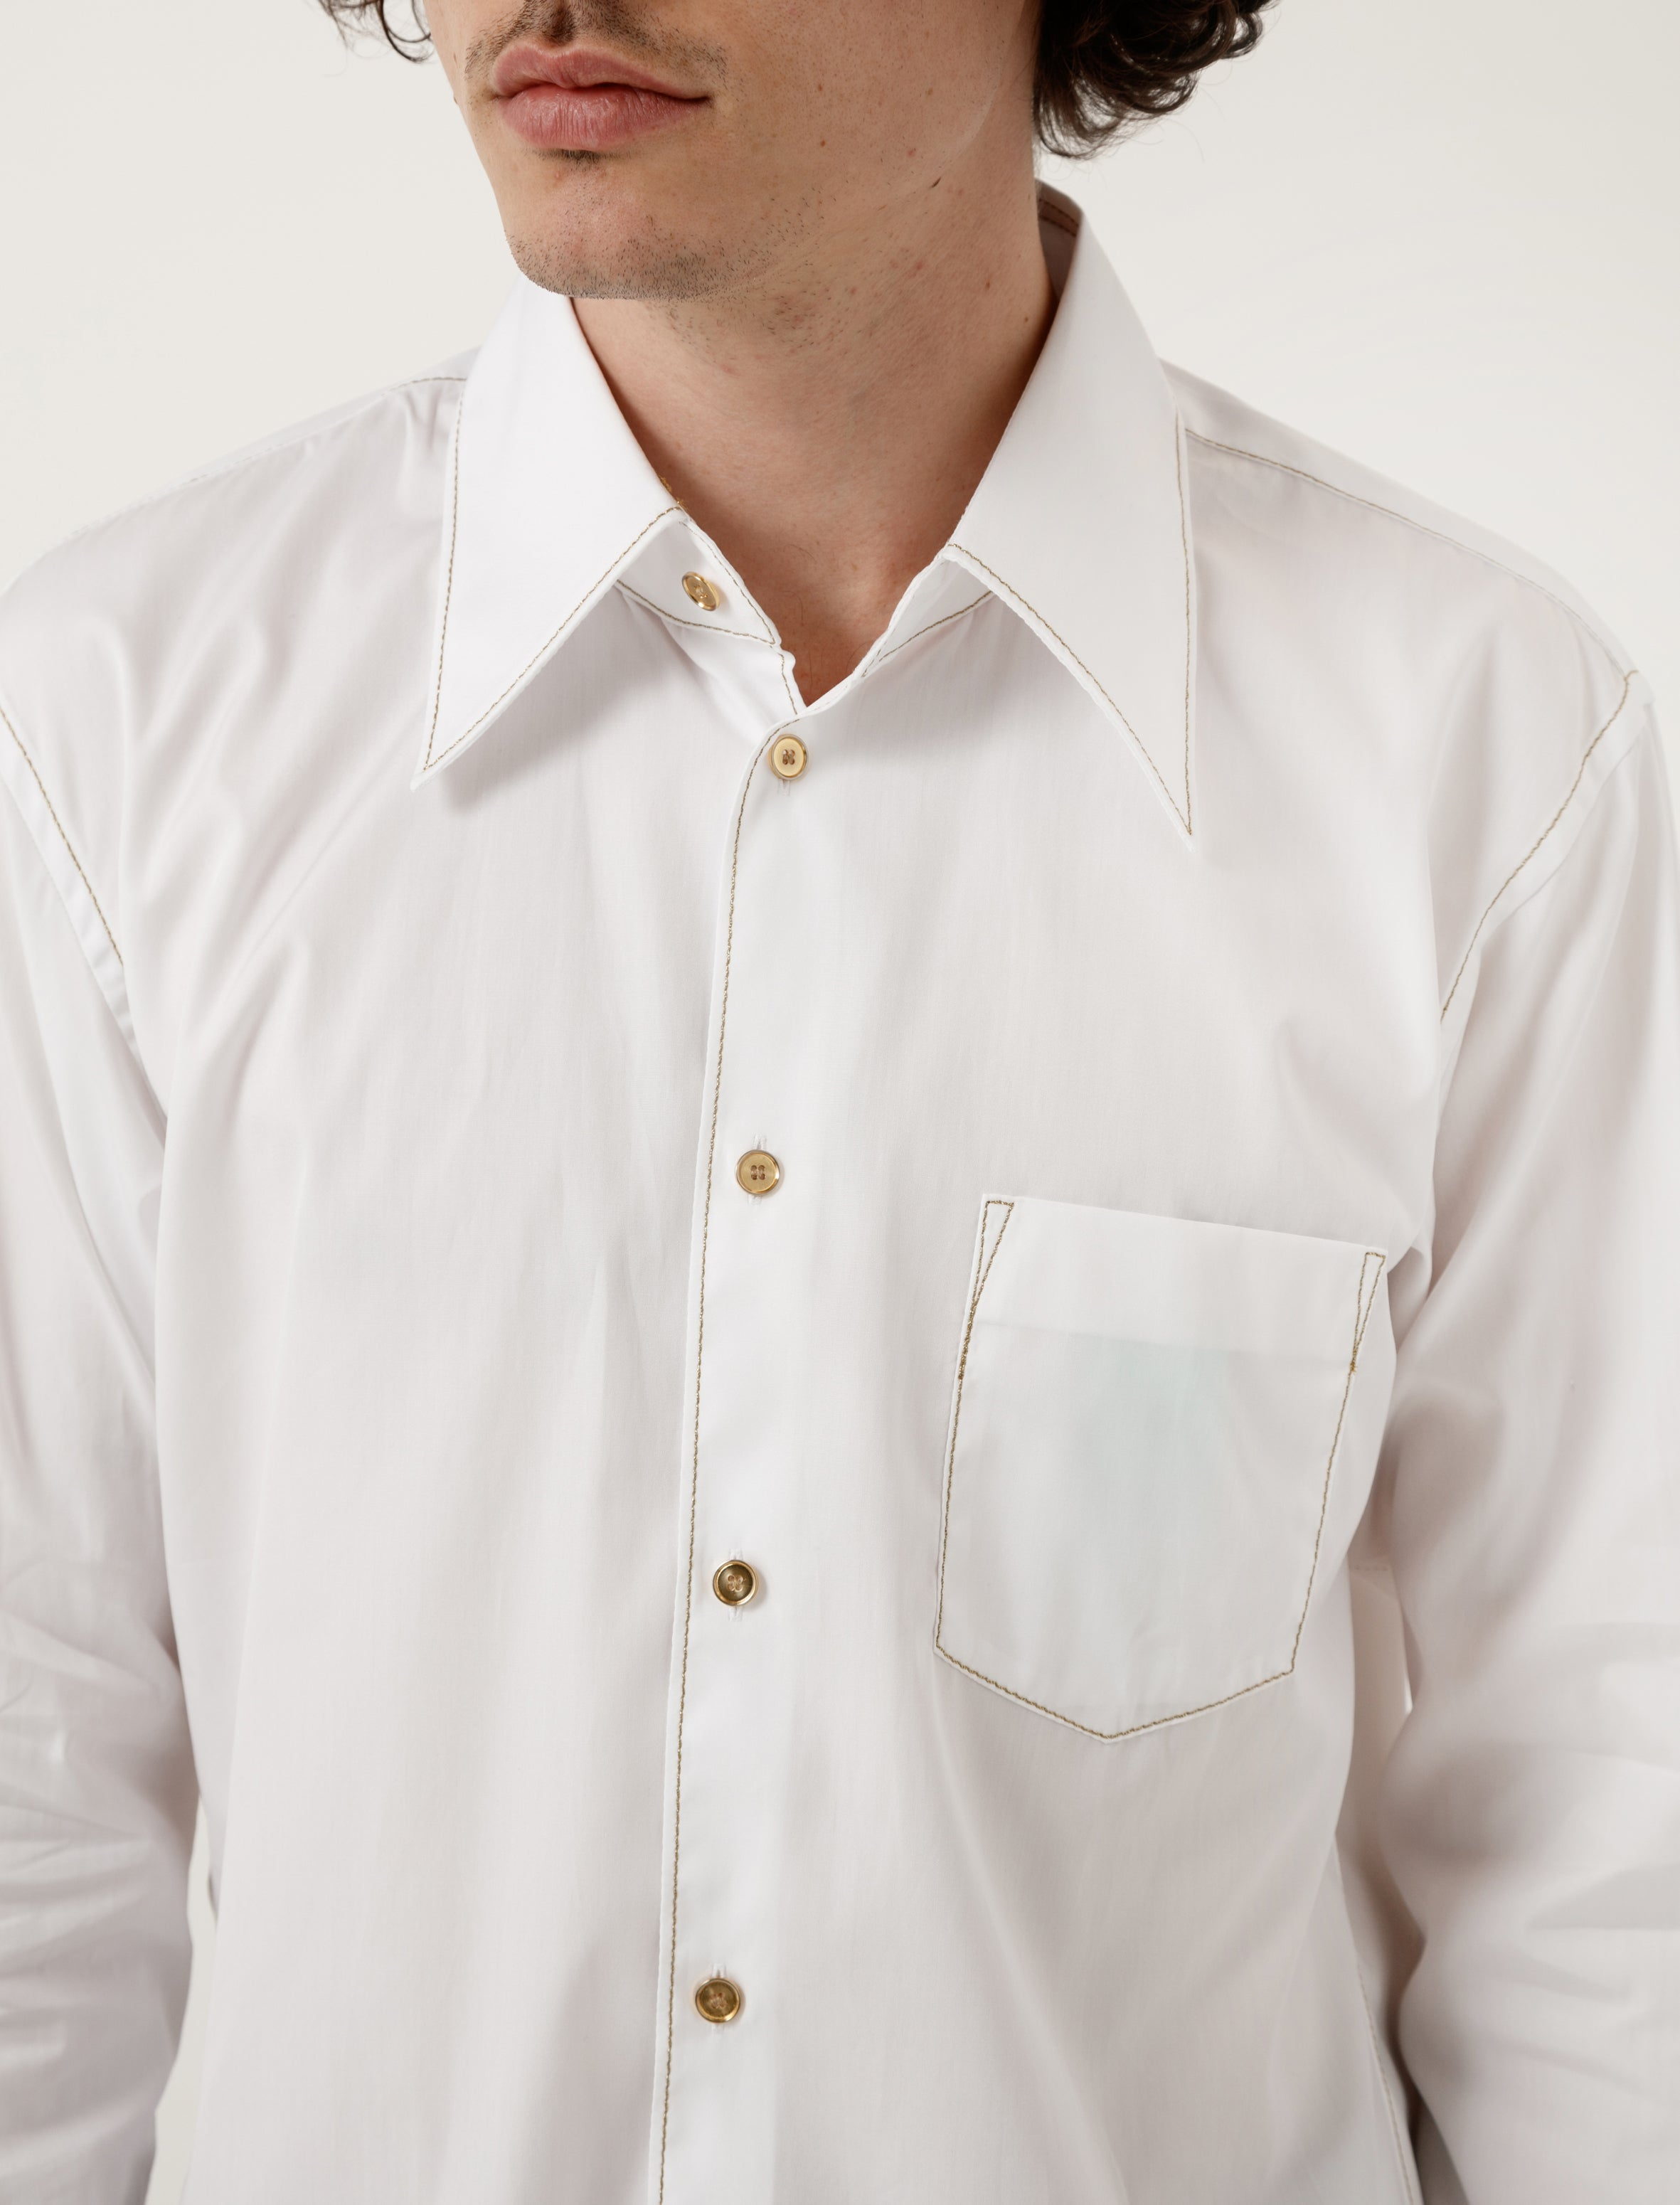 White with Gold Stitch Shirt